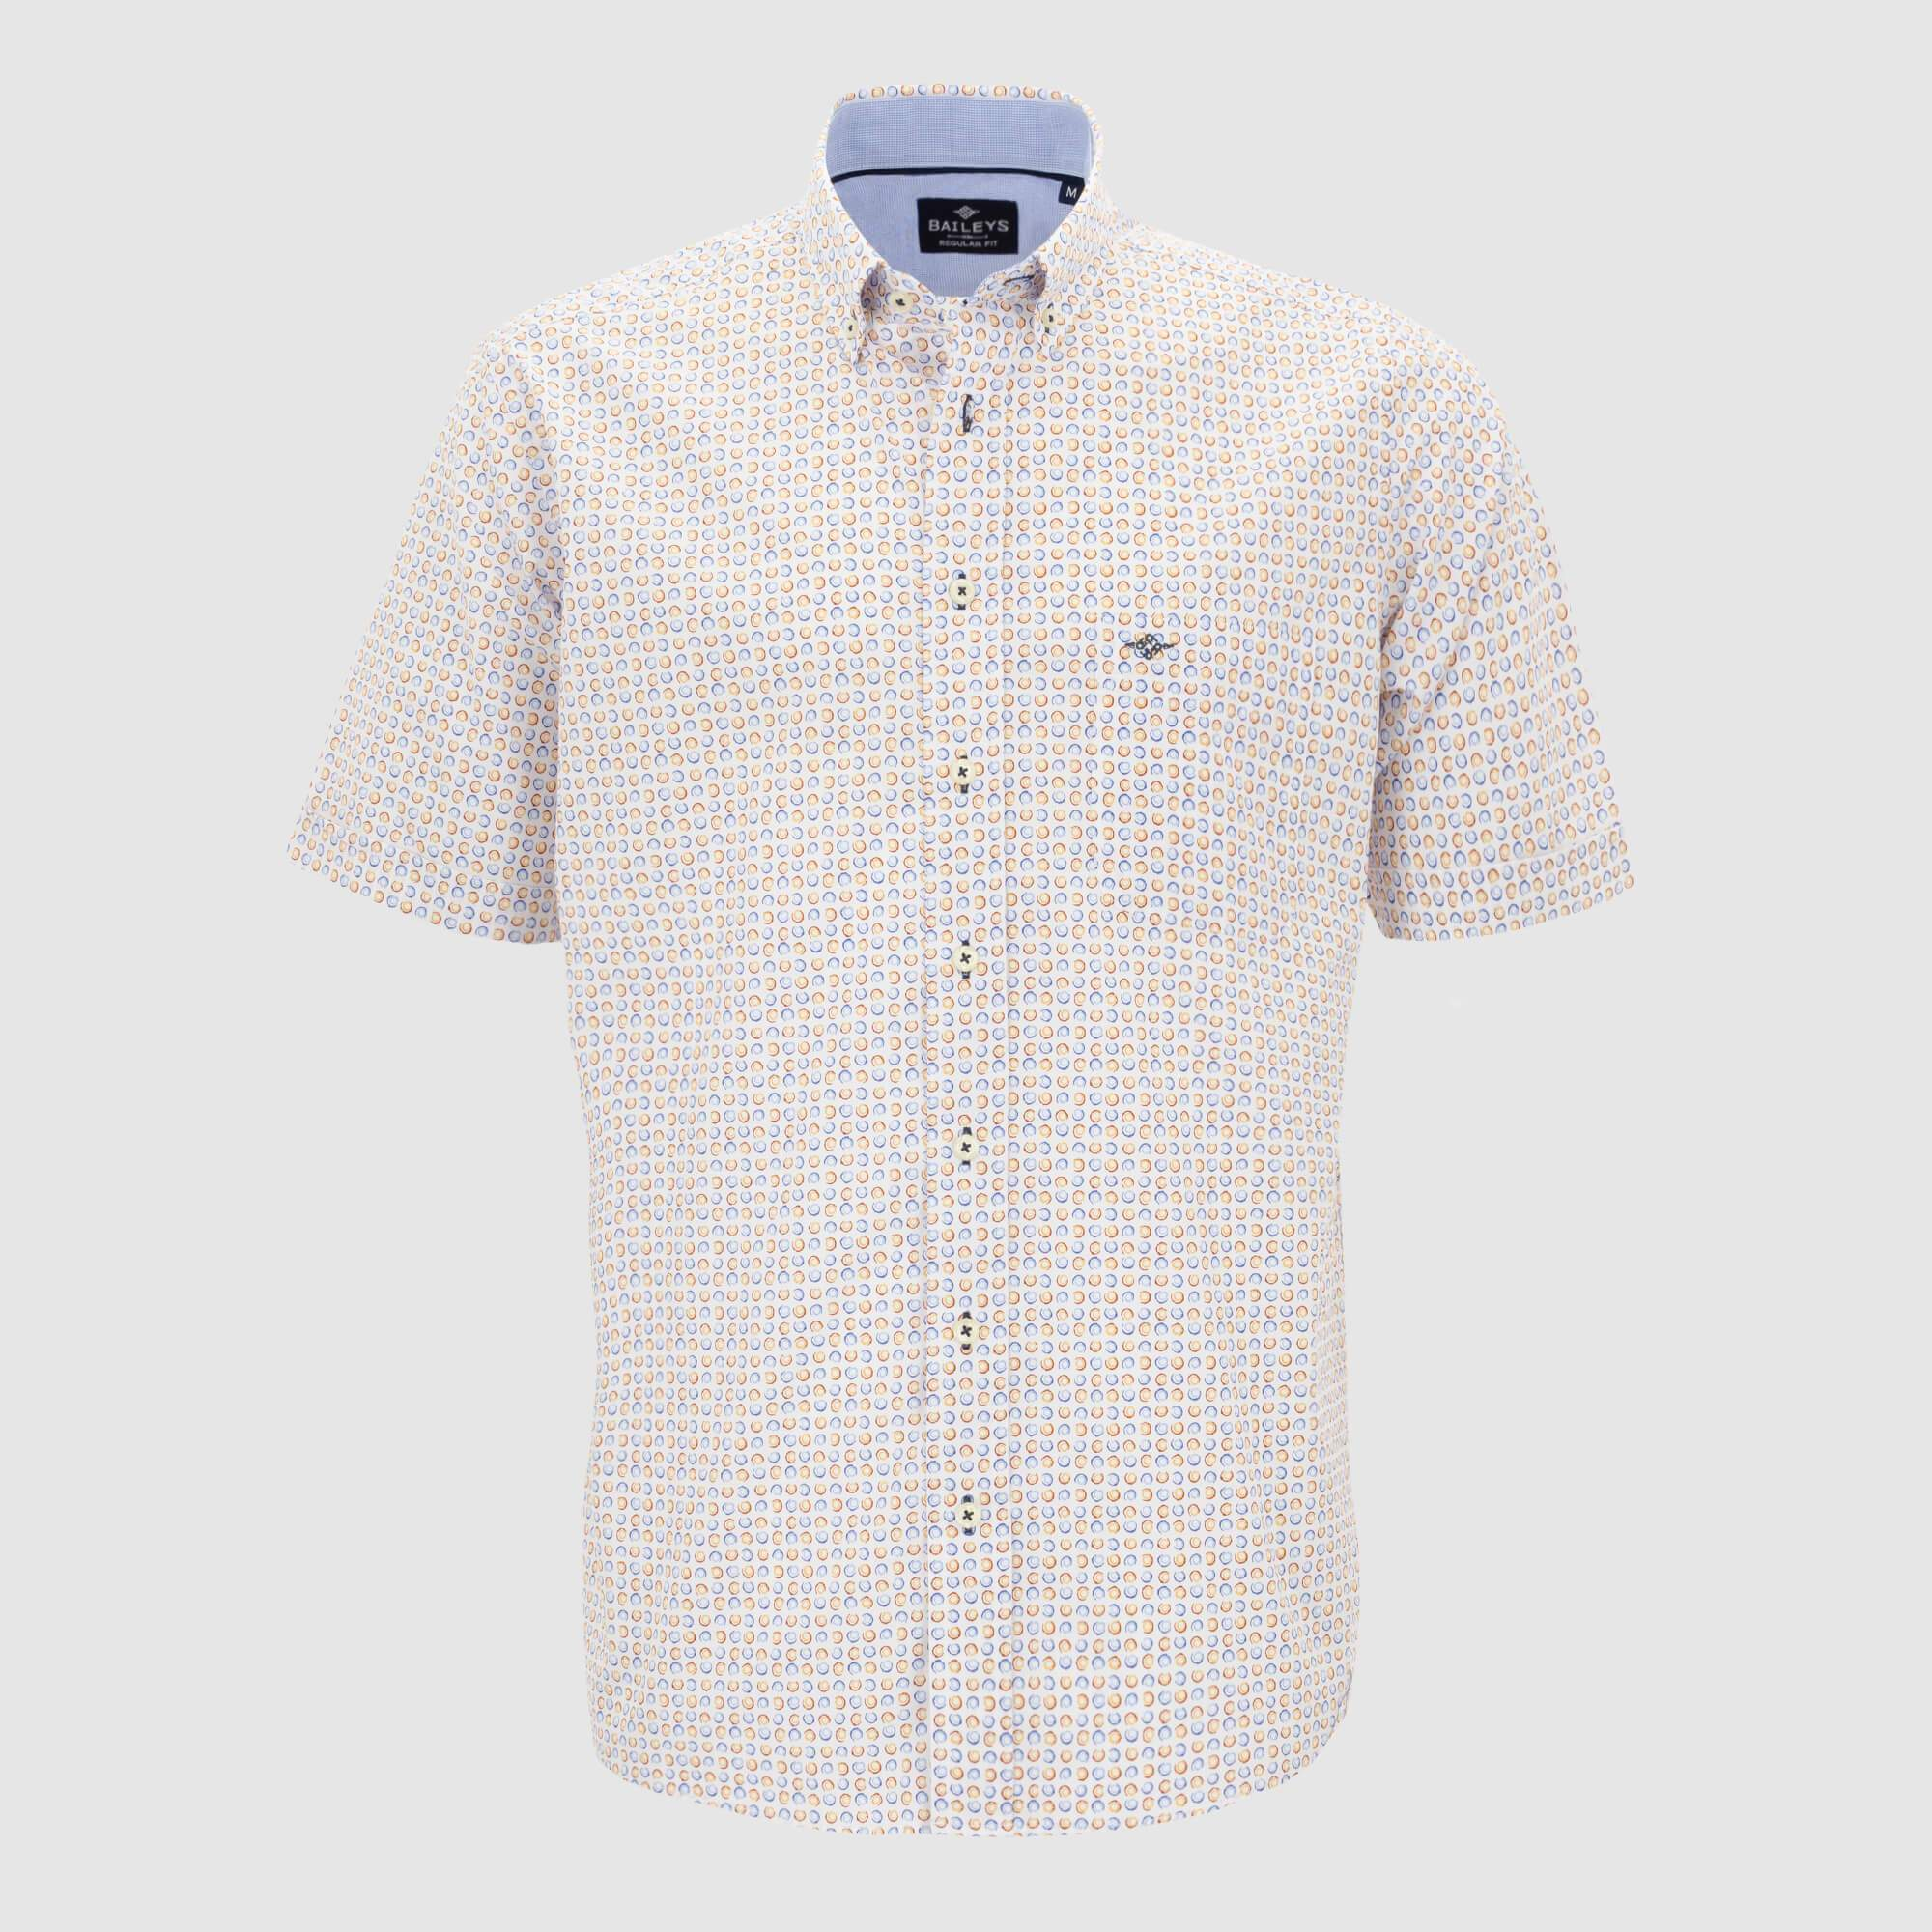 Camisa estampada manga corta regular fit 106676